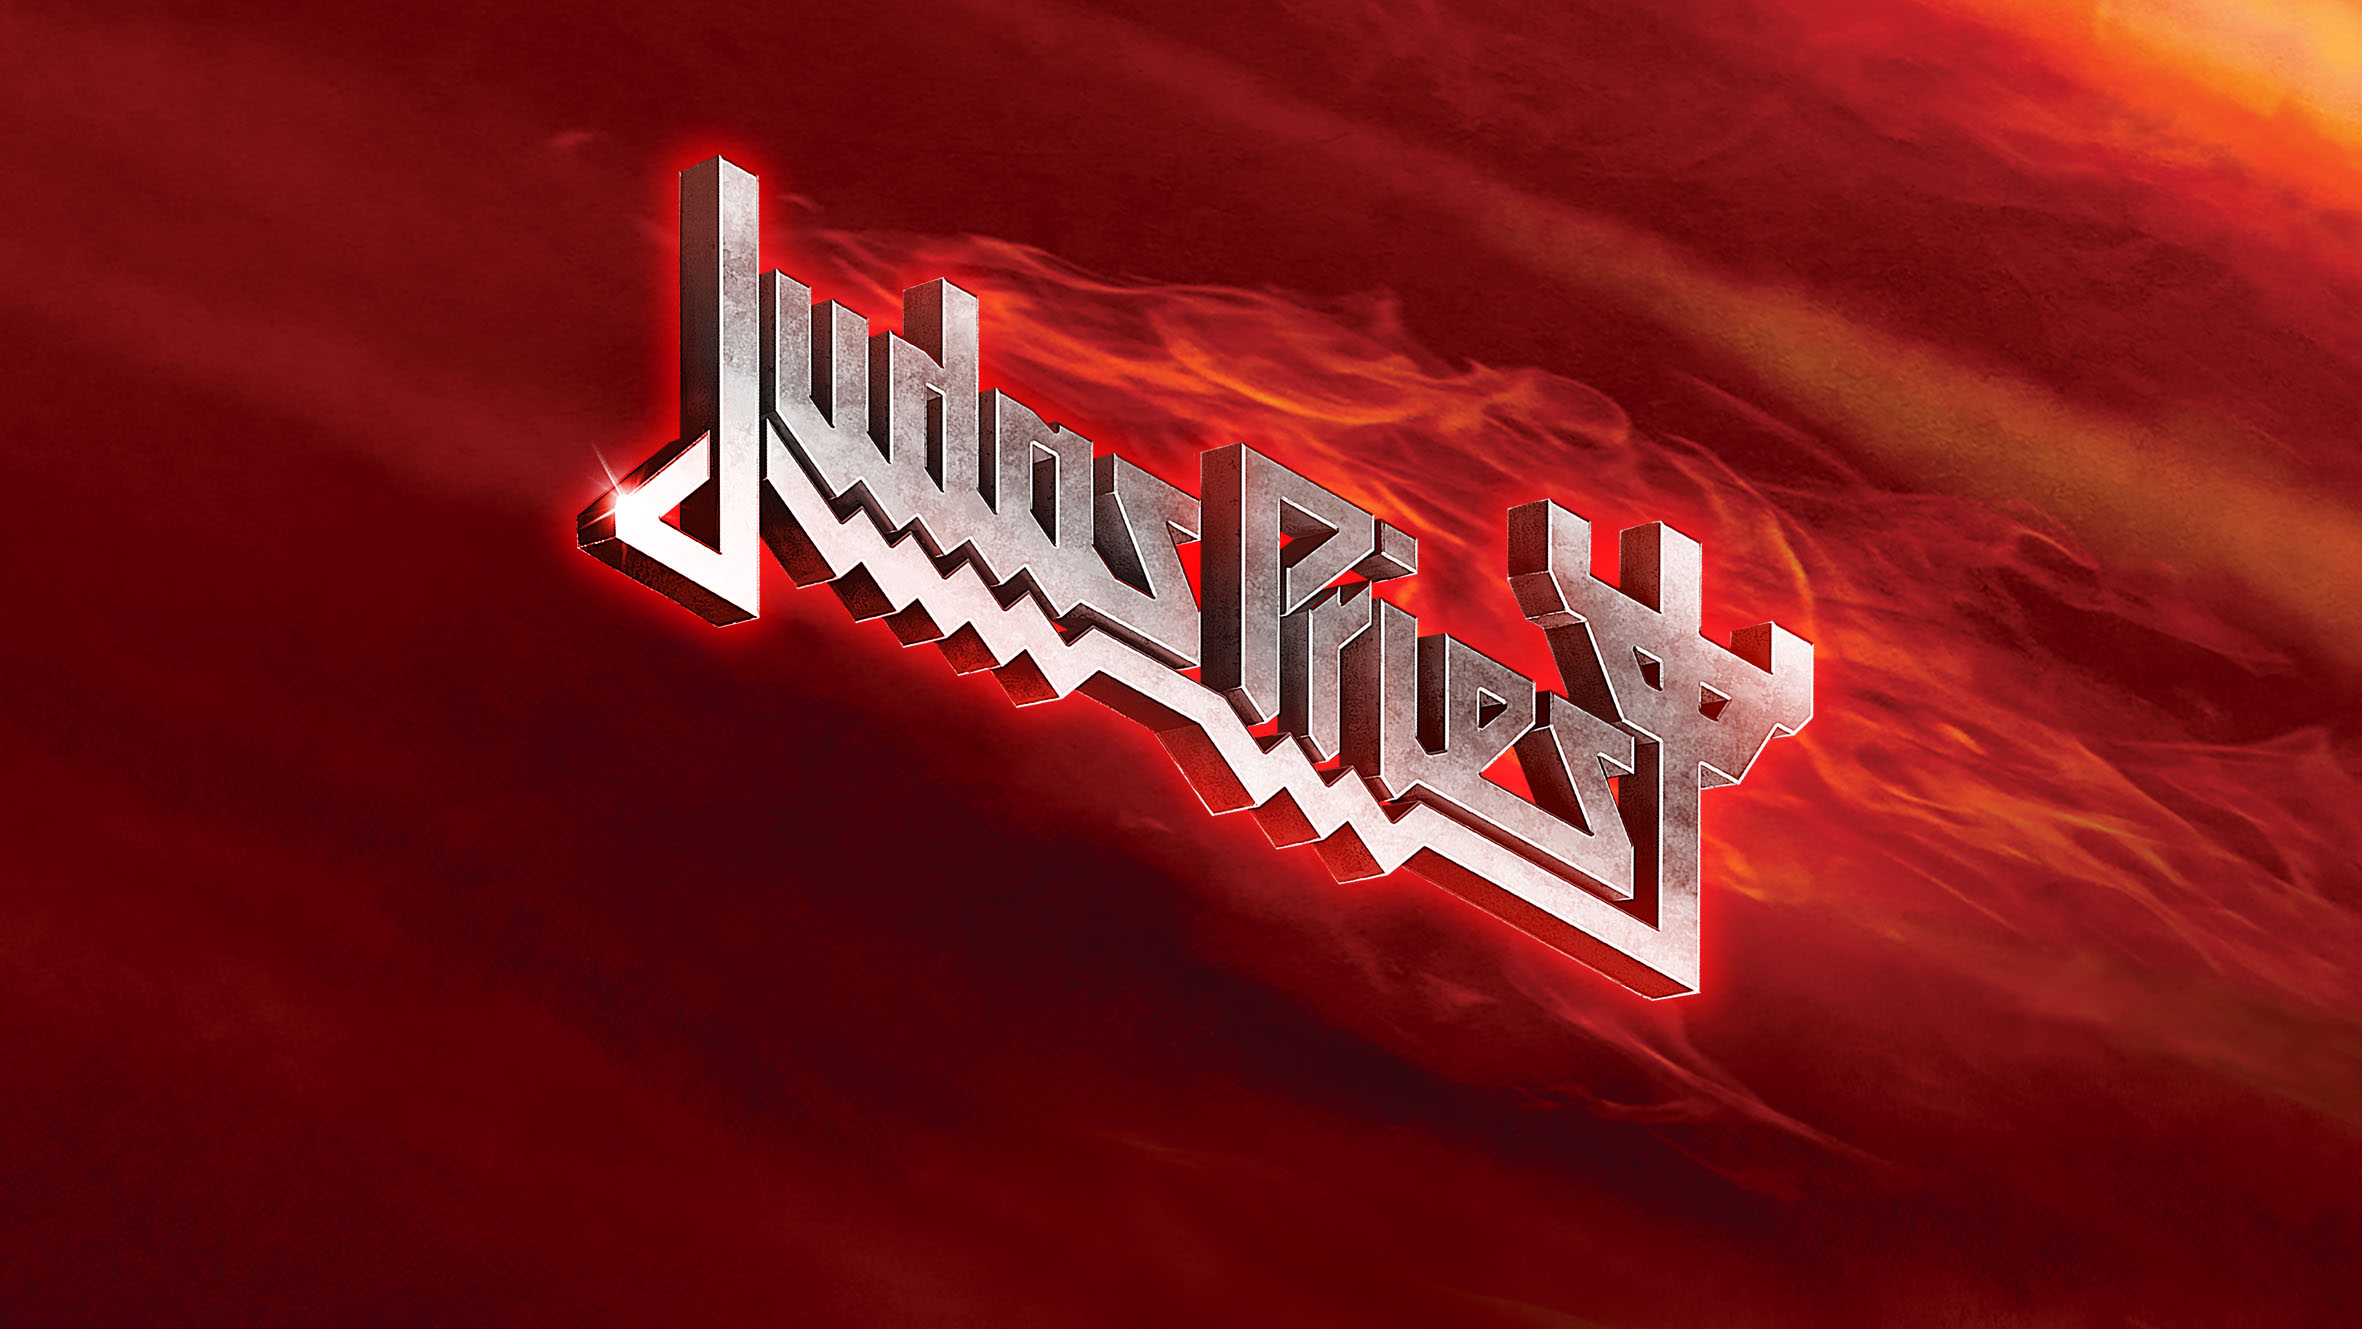 a2cffec72d6 FIREPOWER the new album - out now! Enter JudasPriest.com    ...